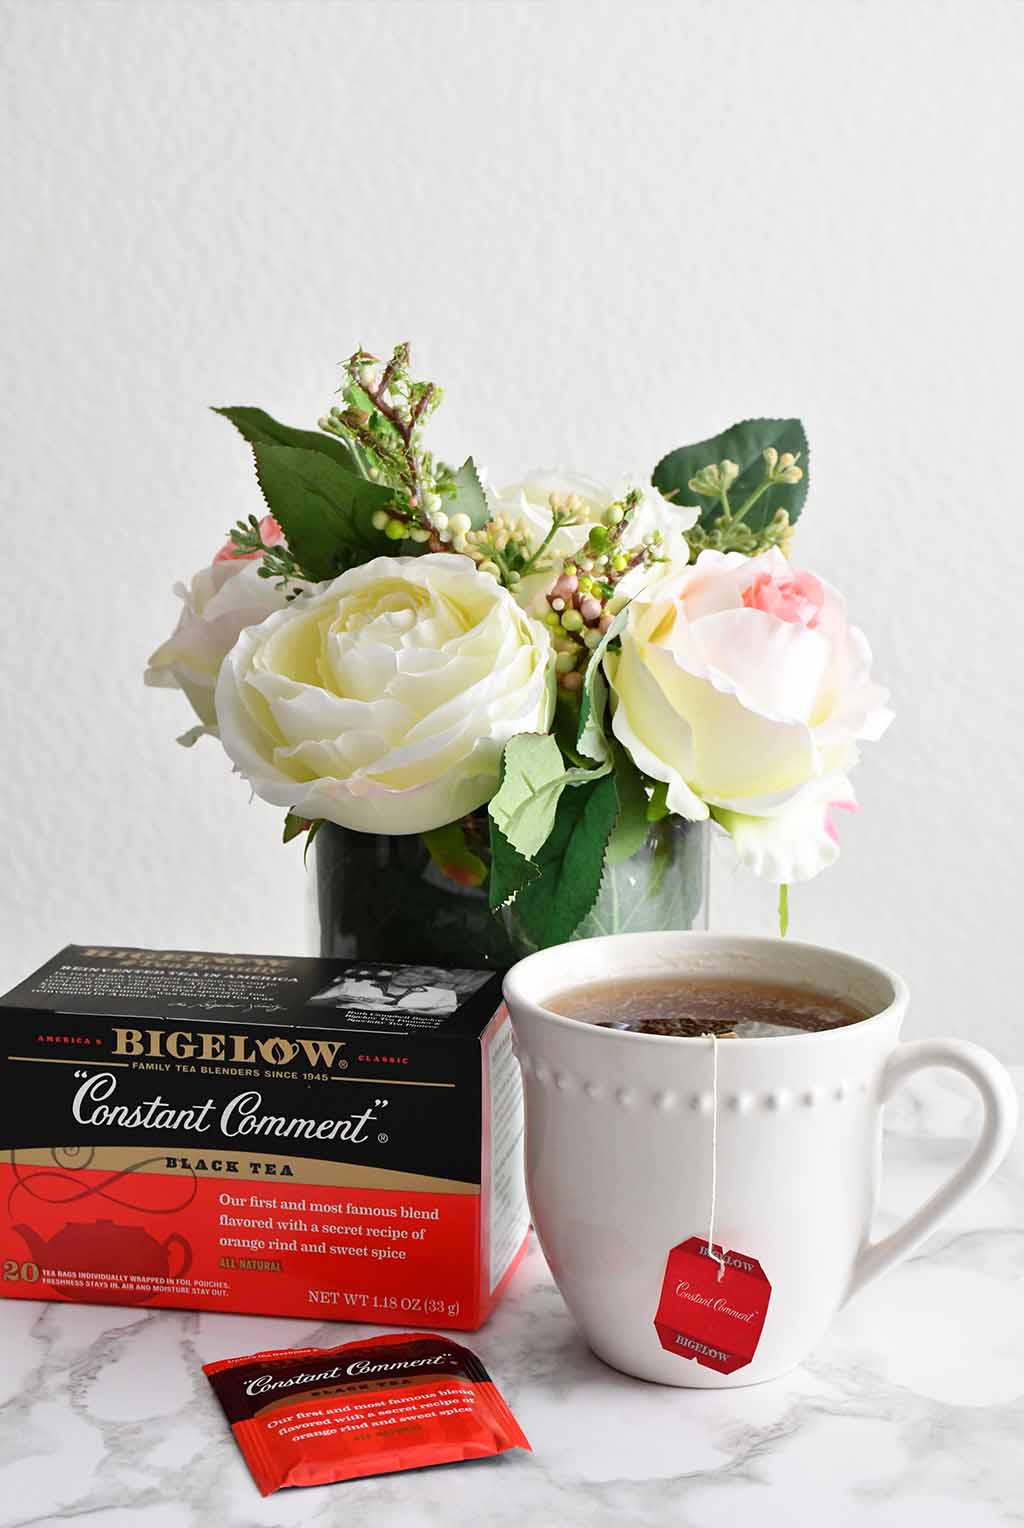 Interested in trying out Bigelow Constant Comment Tea? Hover over the photo to click through for purchasing at Walmart.